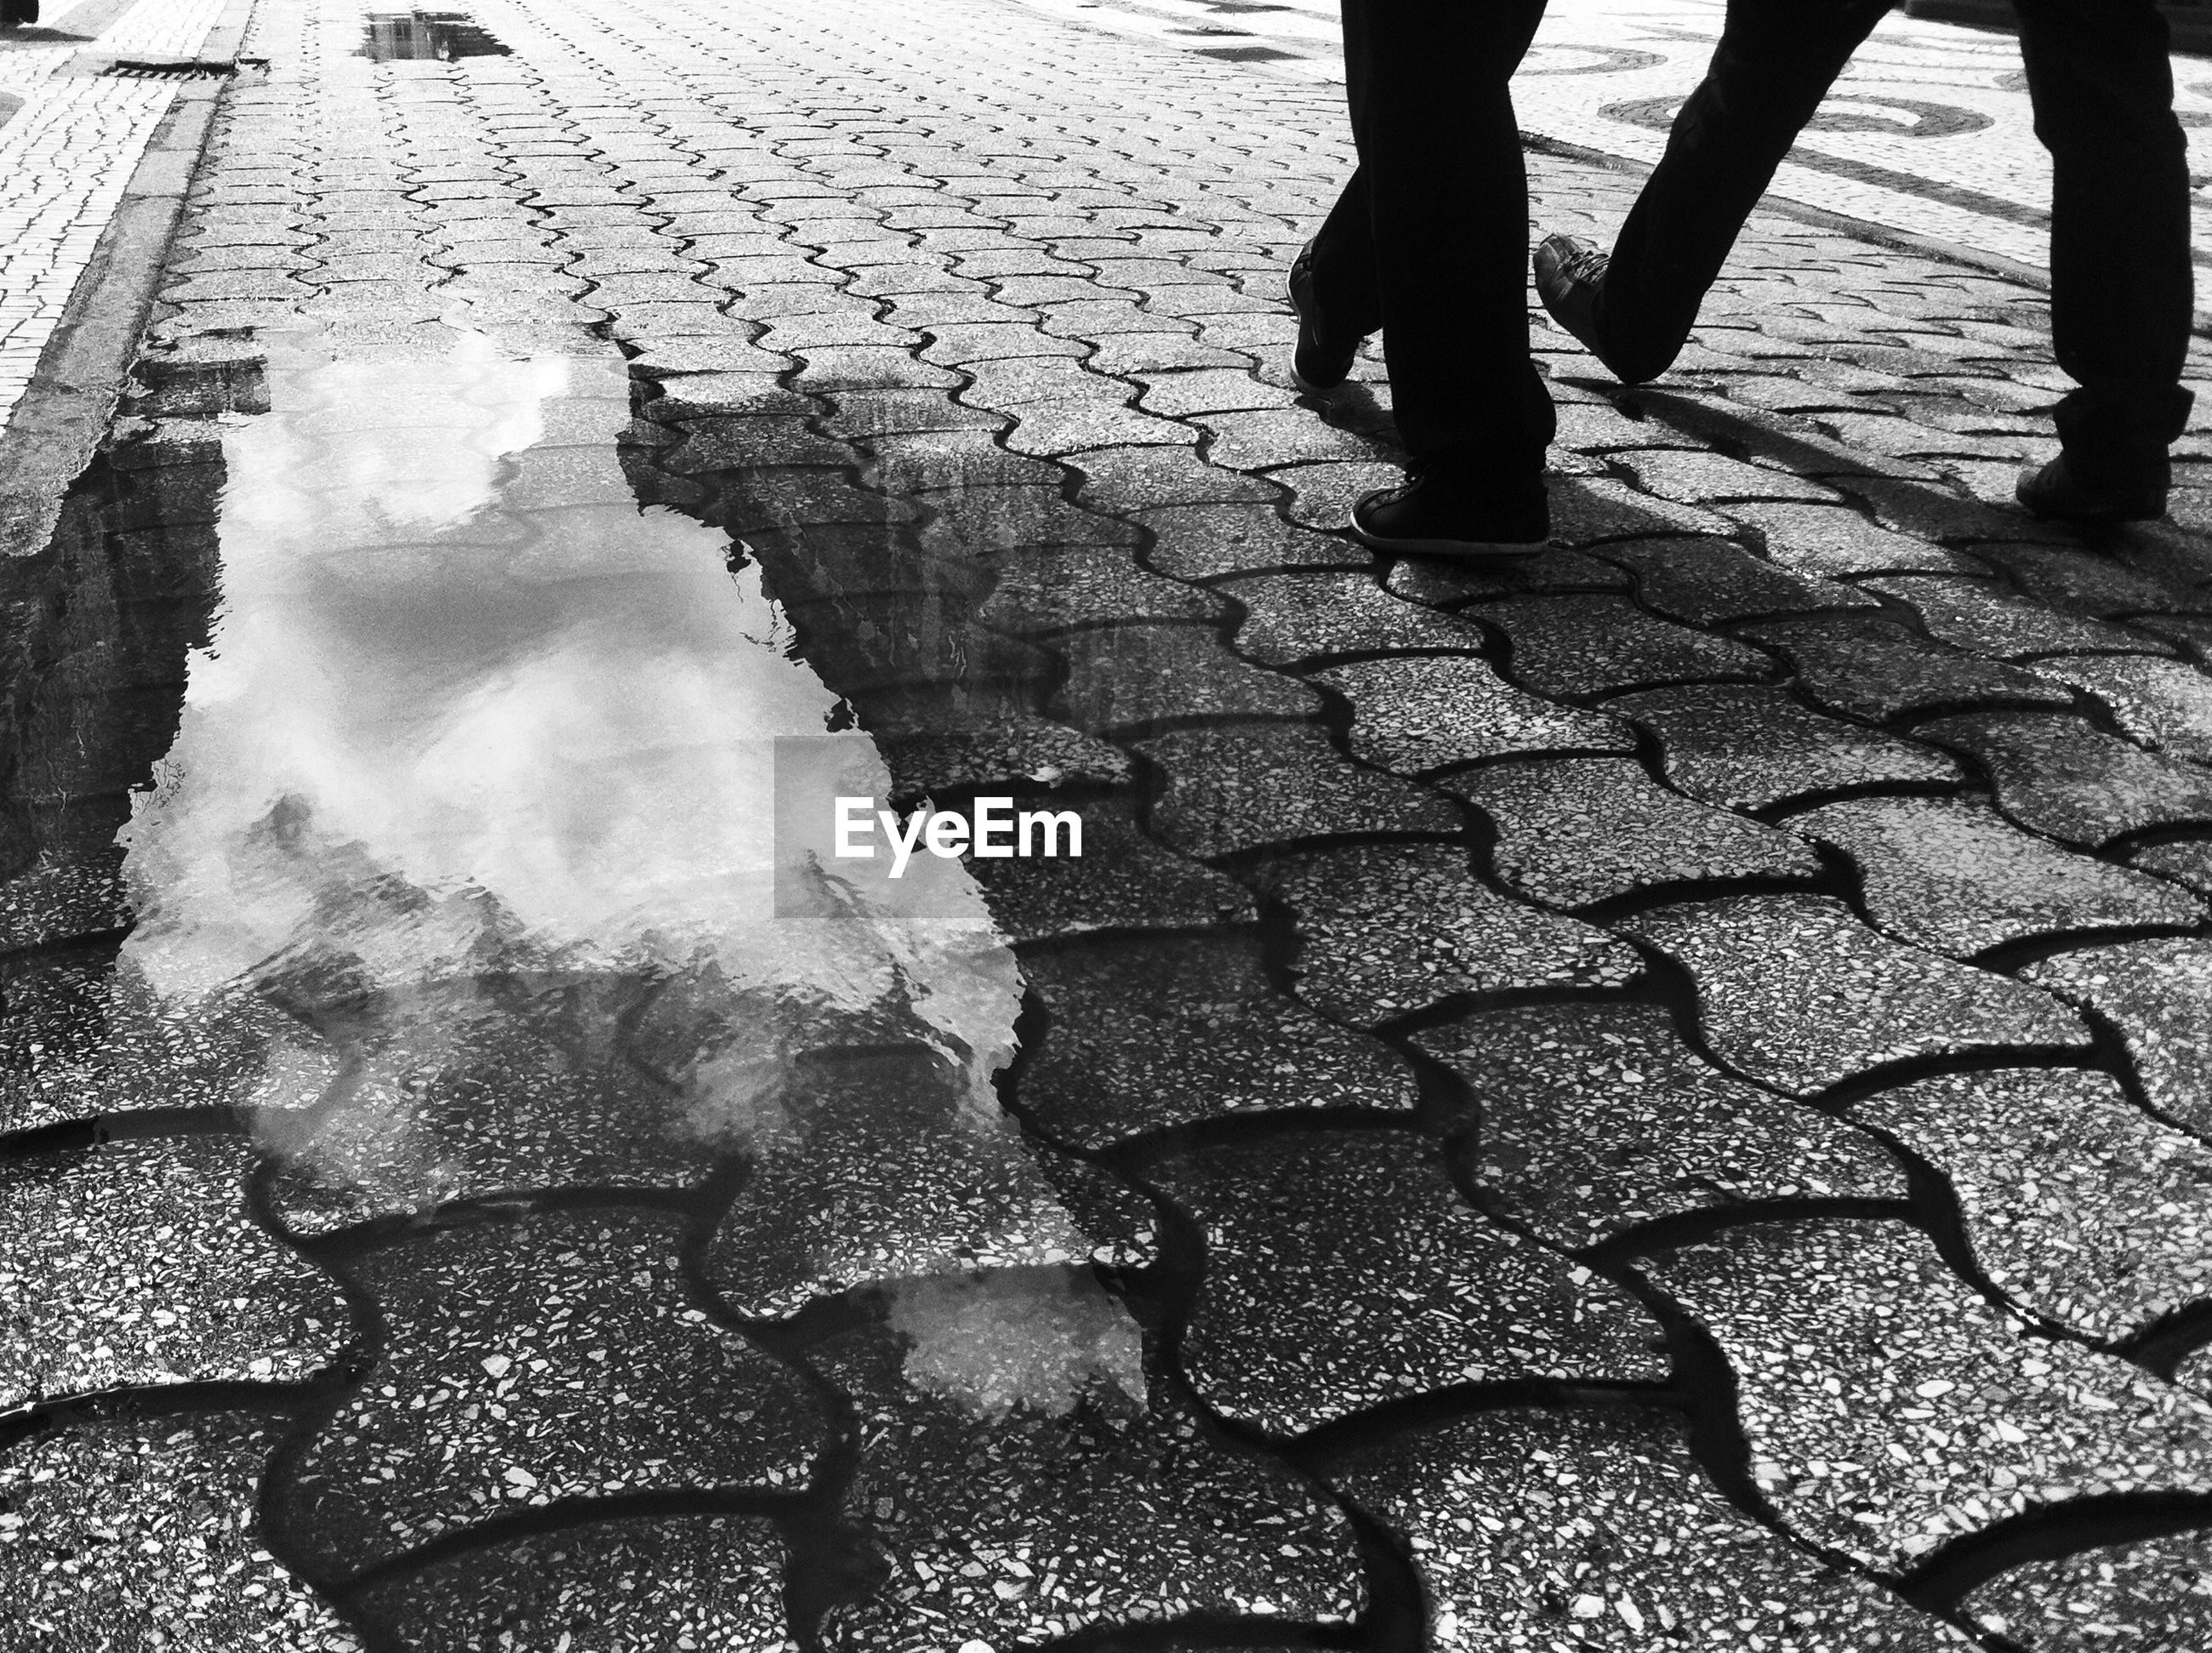 Sky reflecting in puddle